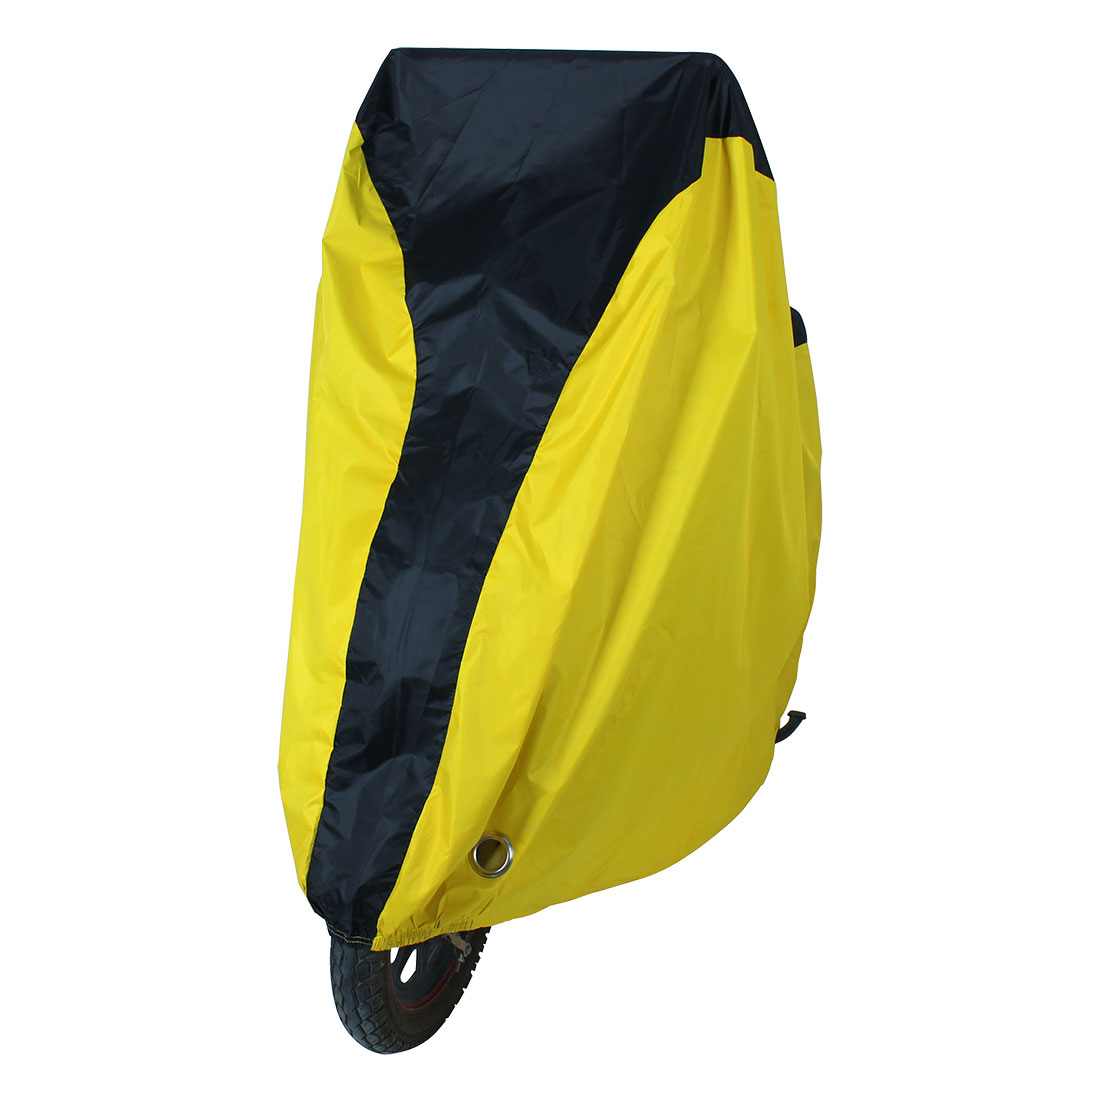 Outdoor Bicycle Bike Cover Rain Dust Protector Anti-UV Garage Storage XL Yellow